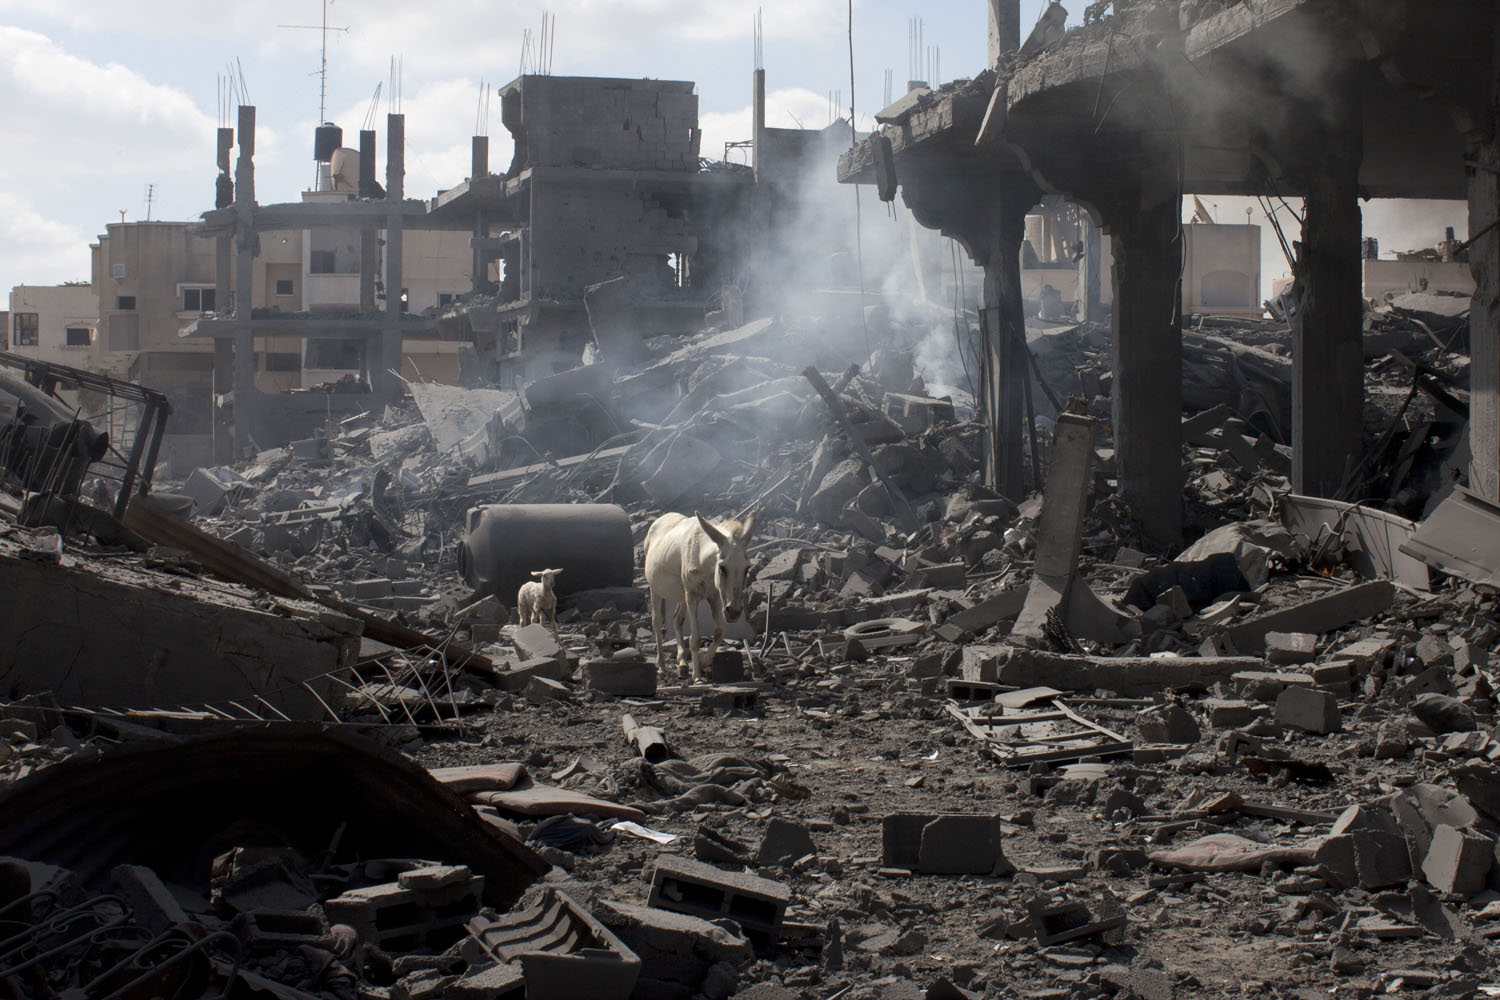 Jul. 26, 2014. A small white lamb follows a white donkey through the rubble of homes  in the northern district of Beit Hanun in the Gaza Strip during an humanitarian truce.